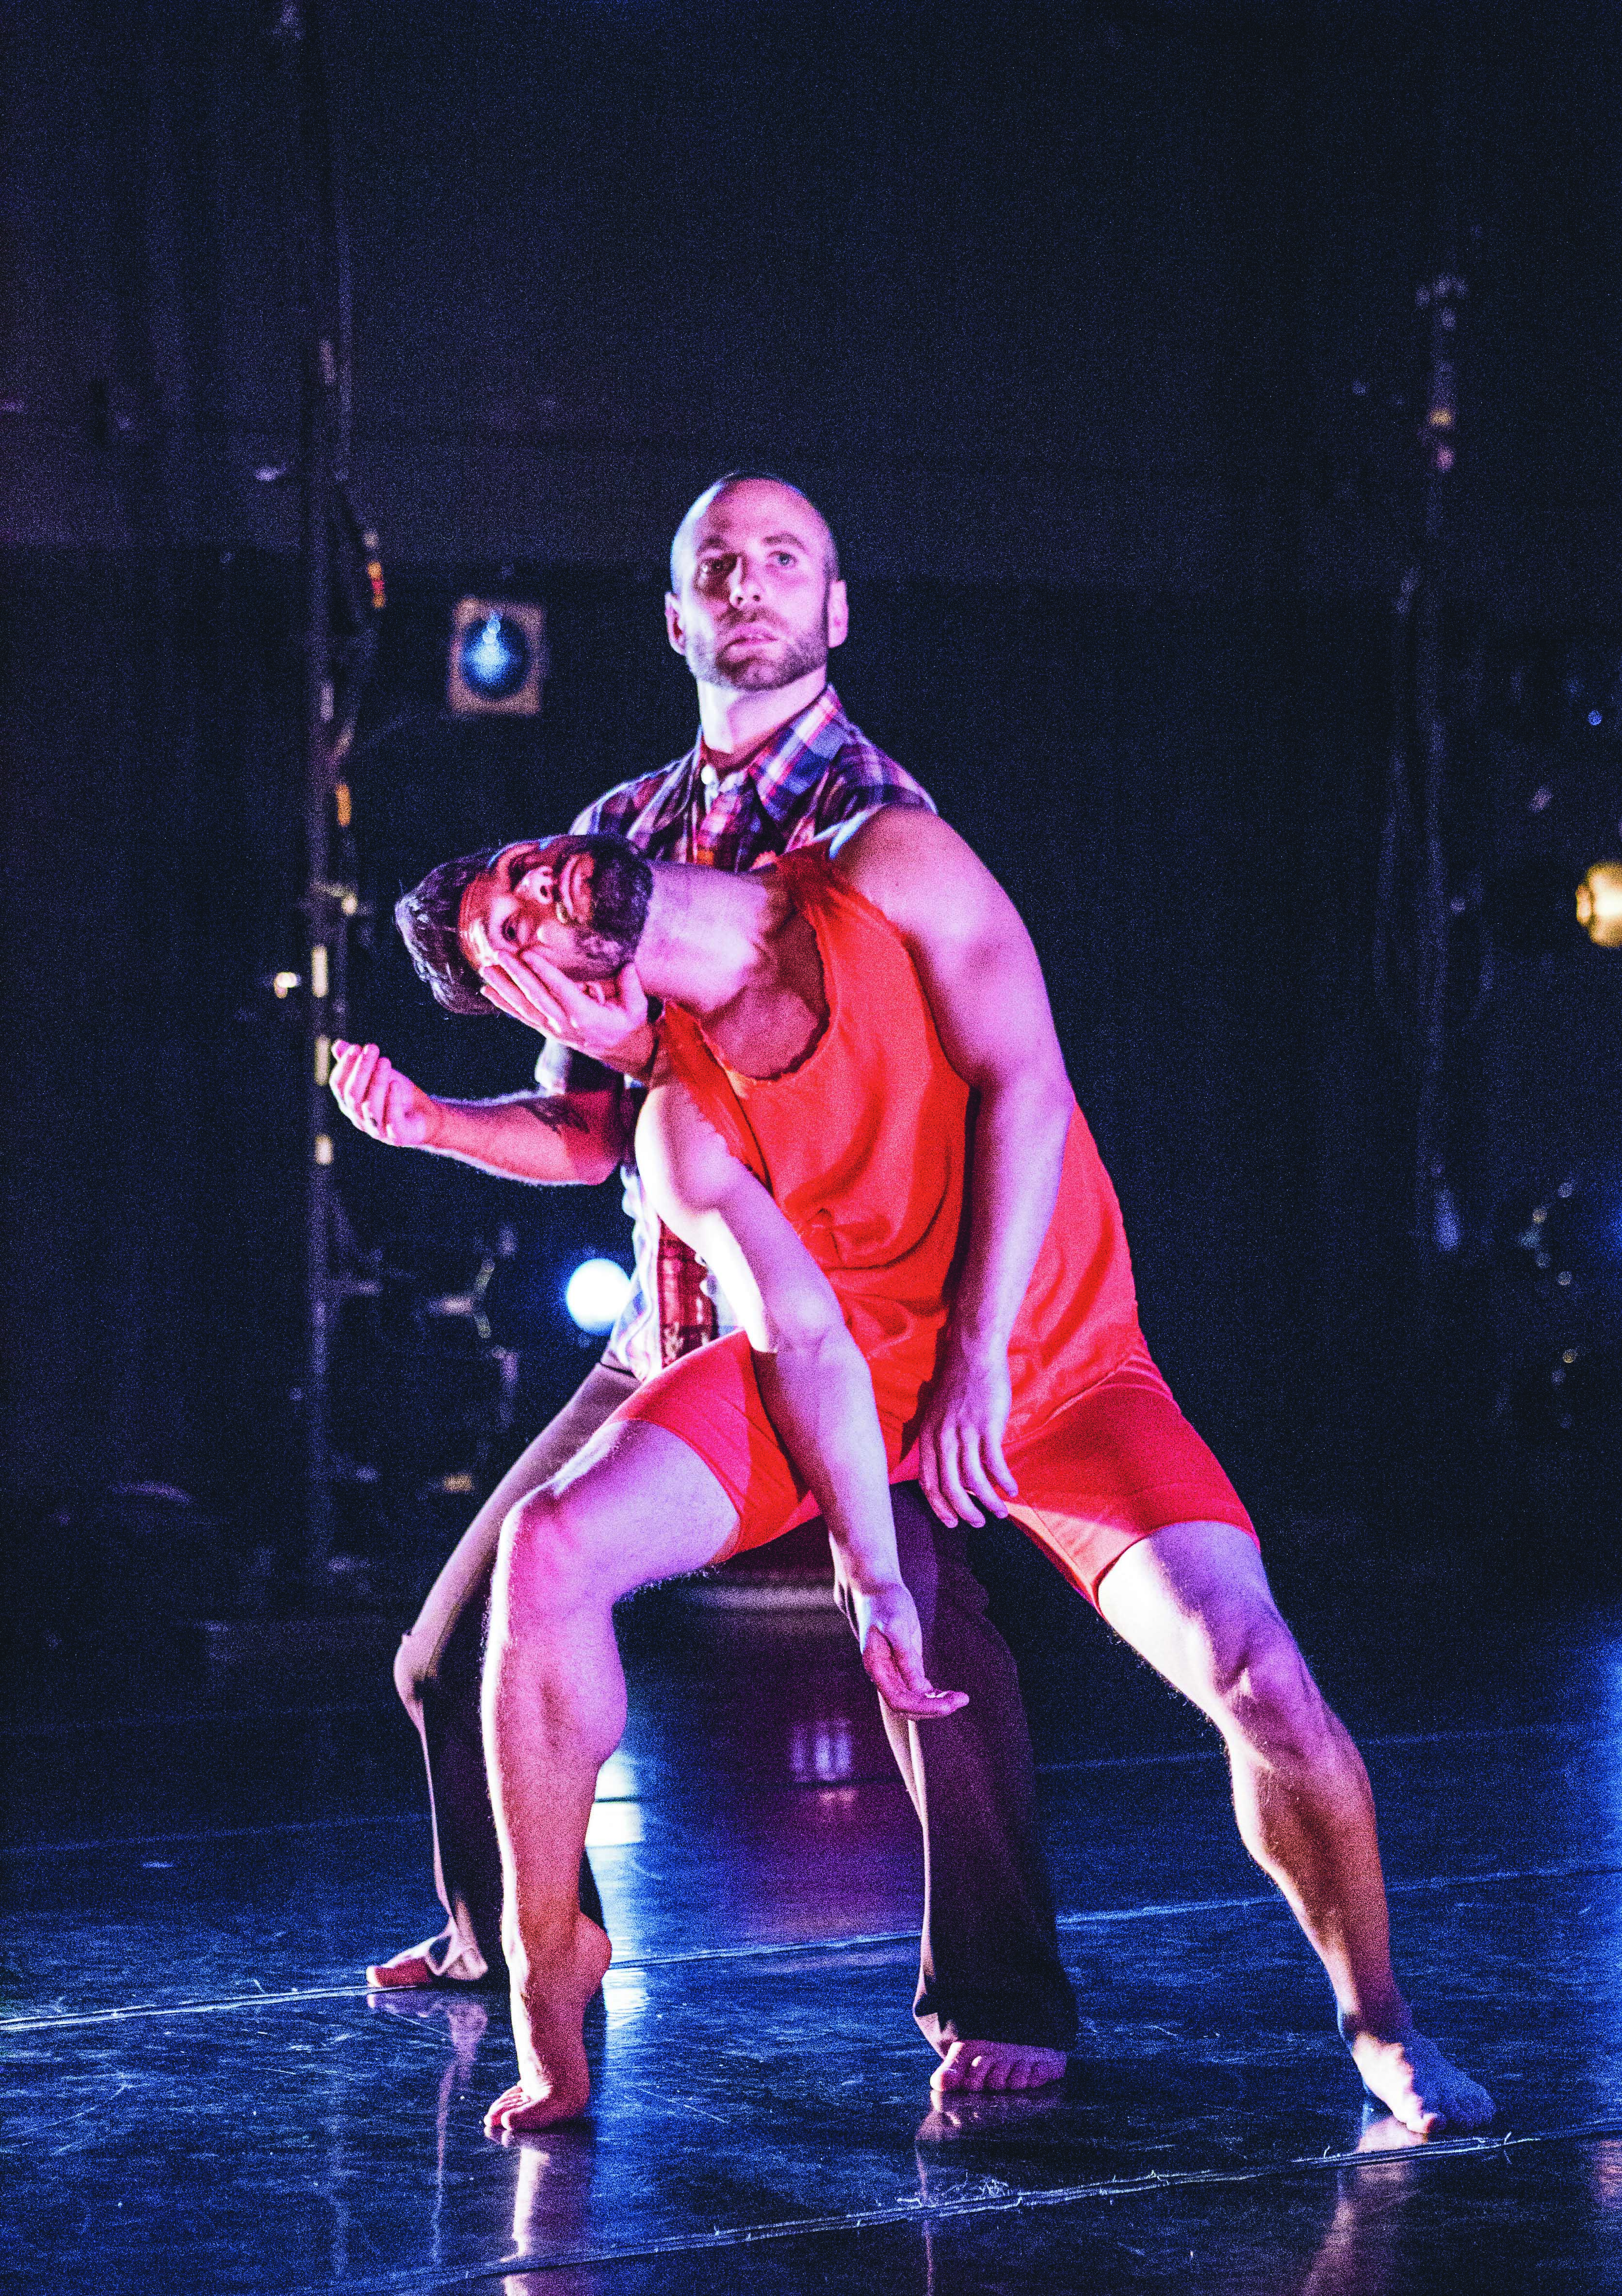 (L-R) Chad Dawson and Nol Simonse dance a duet where they bounce each other away. (Photo by Elisa Parrino)